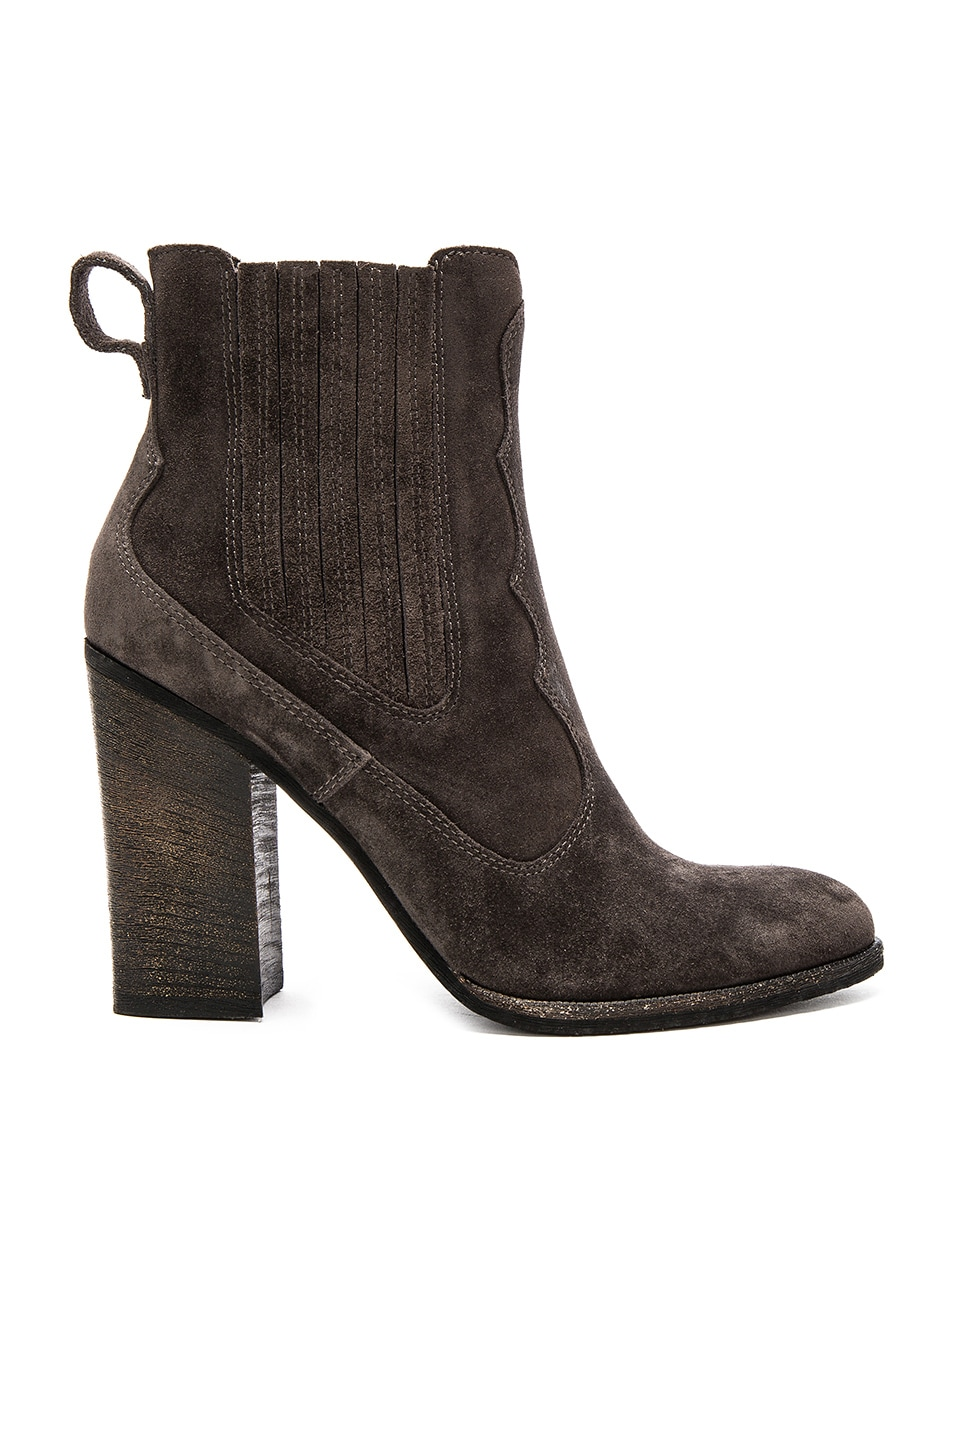 Dolce Vita Conway Bootie in Anthracite